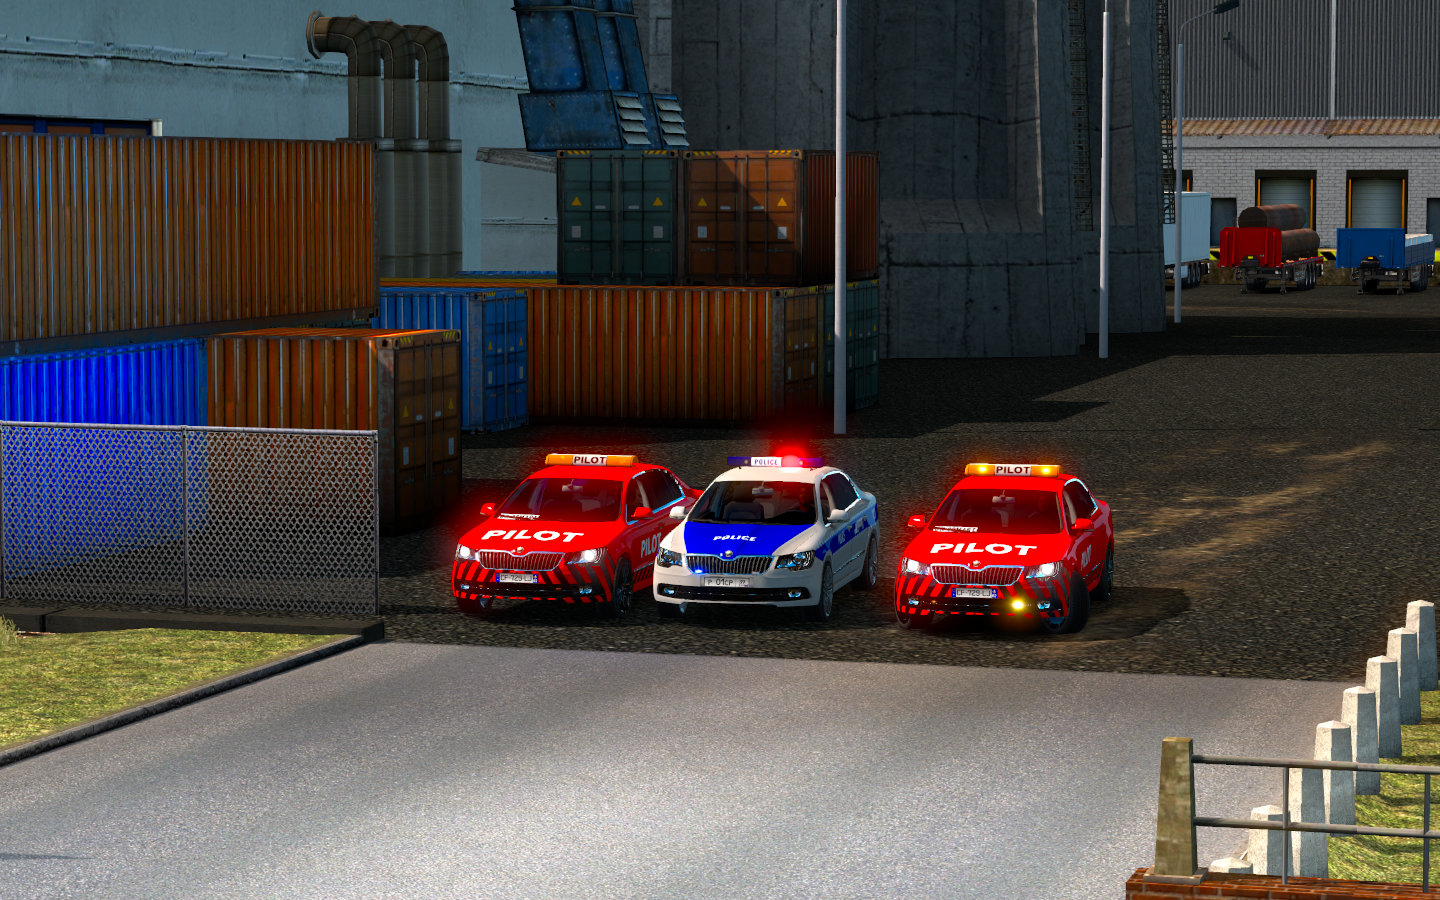 ets2_20190315_204558_00.png